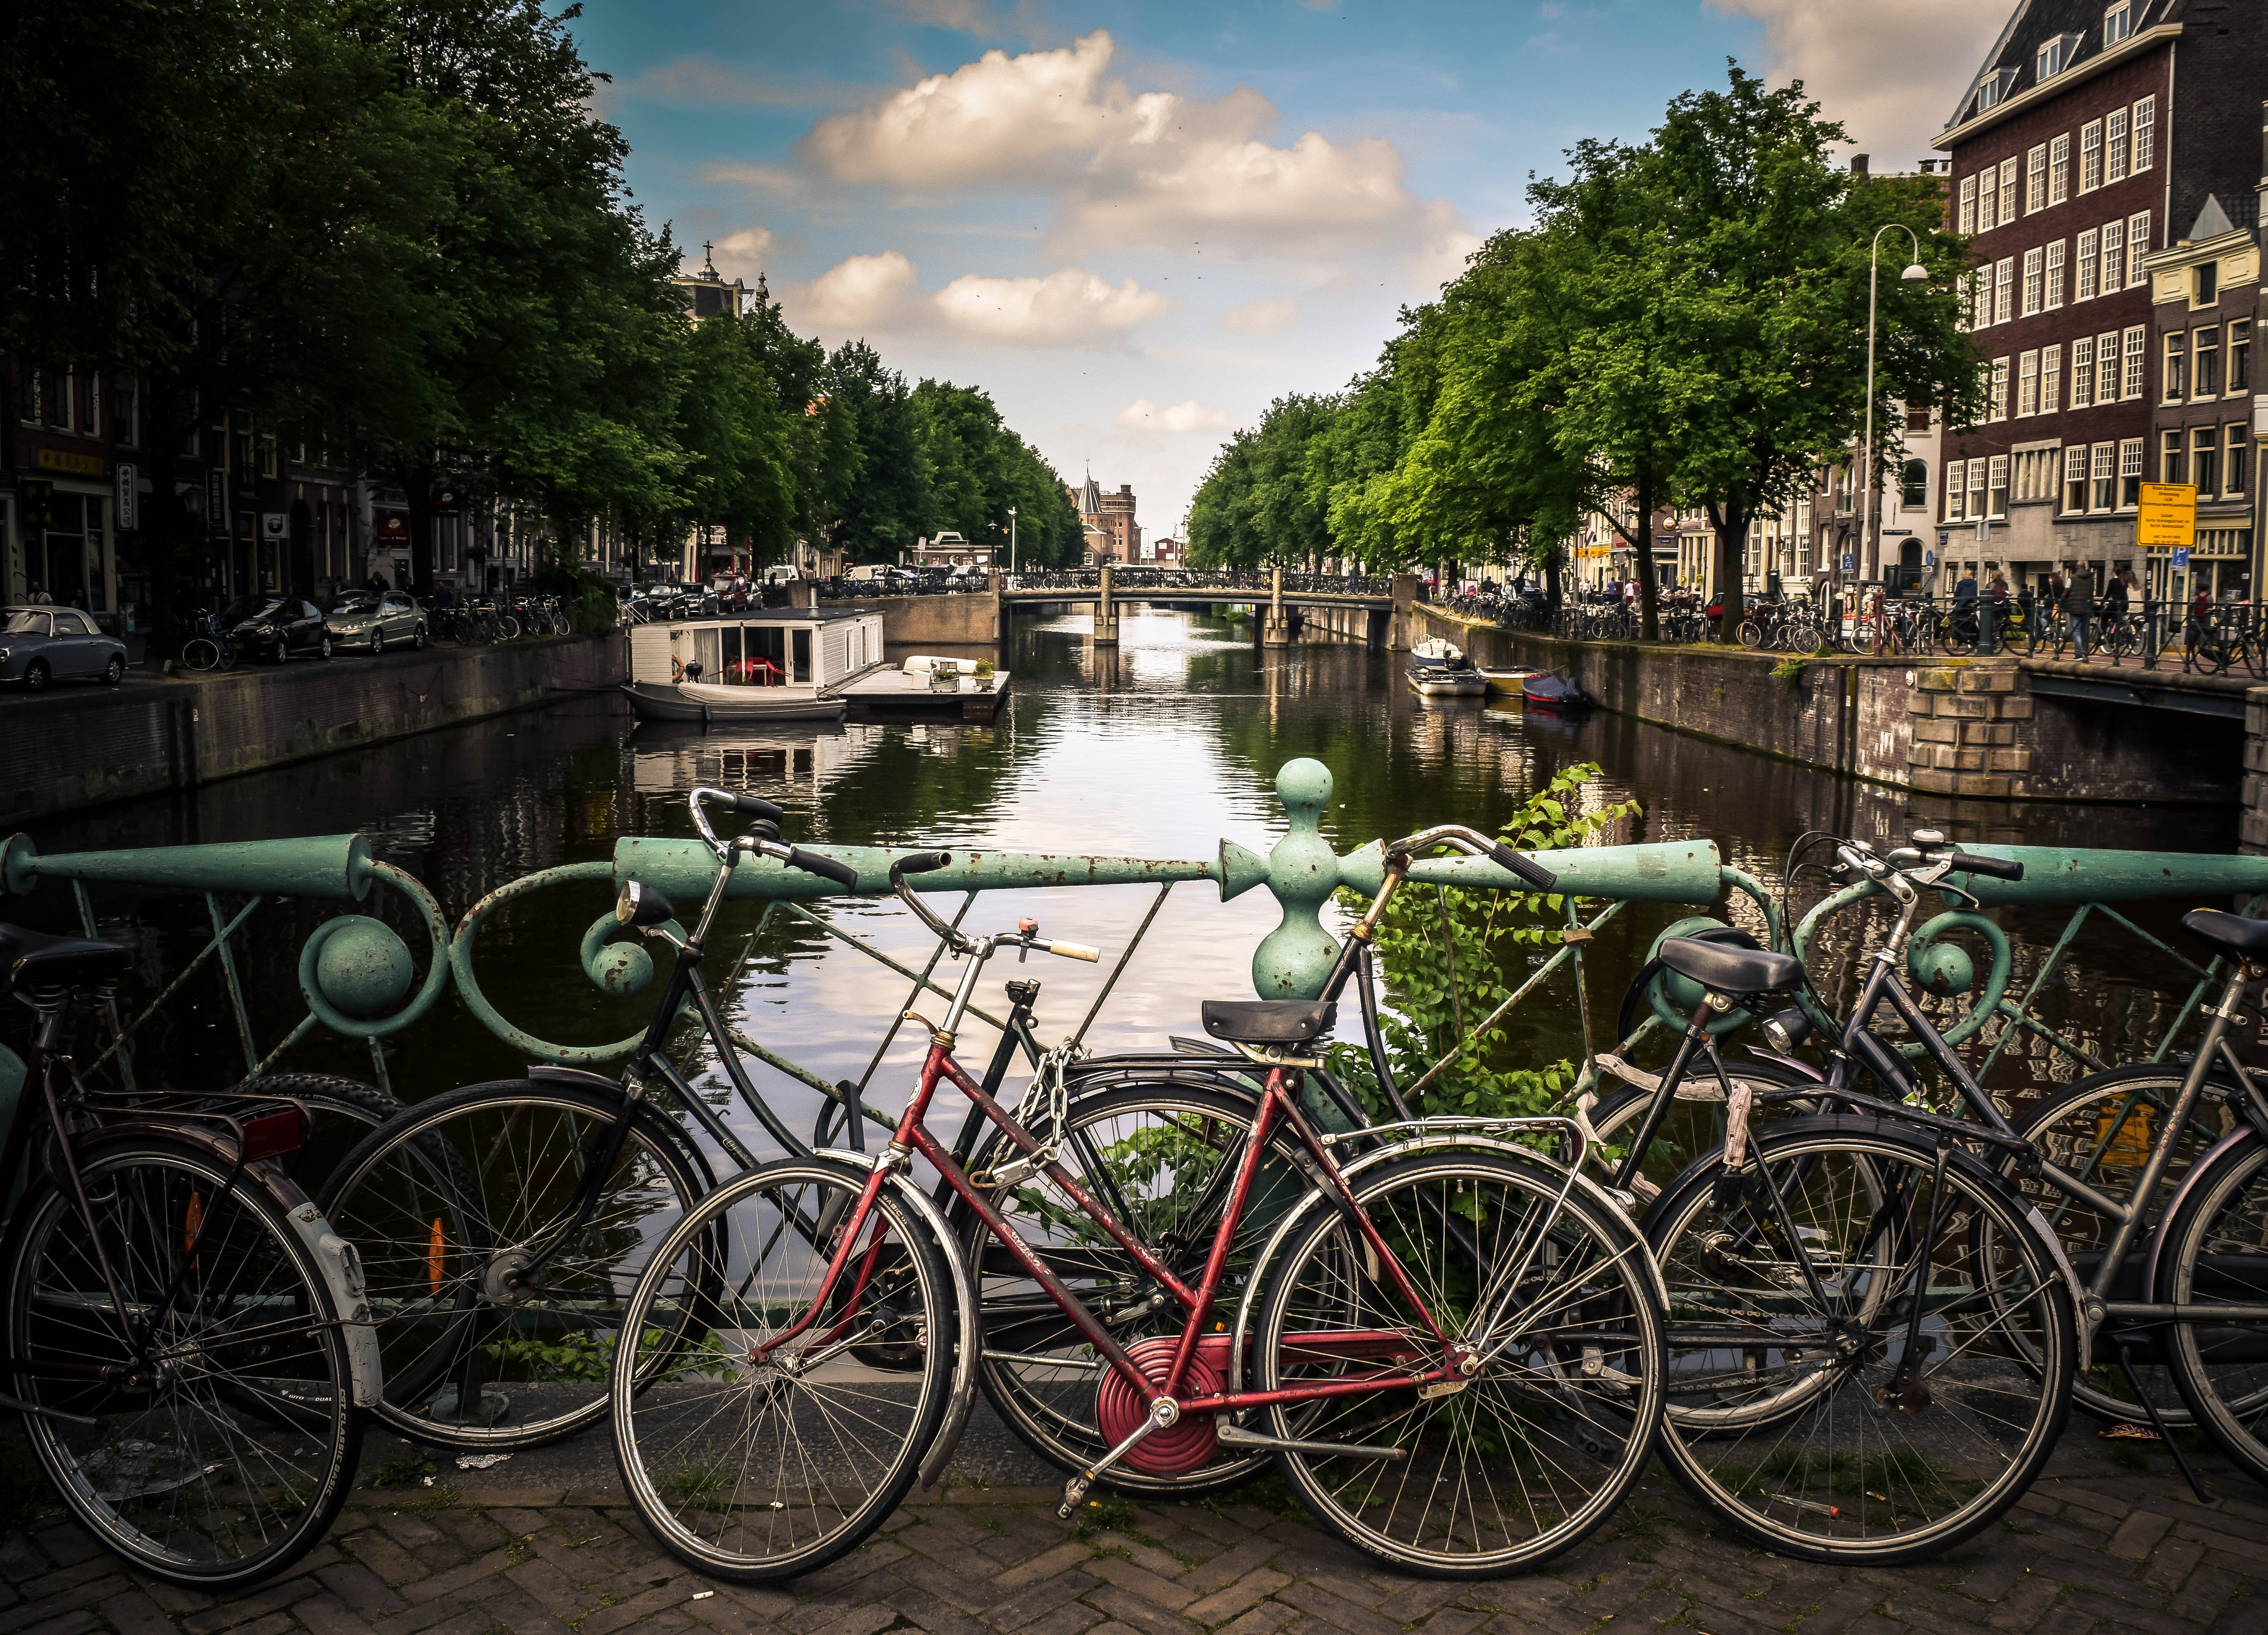 6 Reasons Why You Should Take The Train To Amsterdam